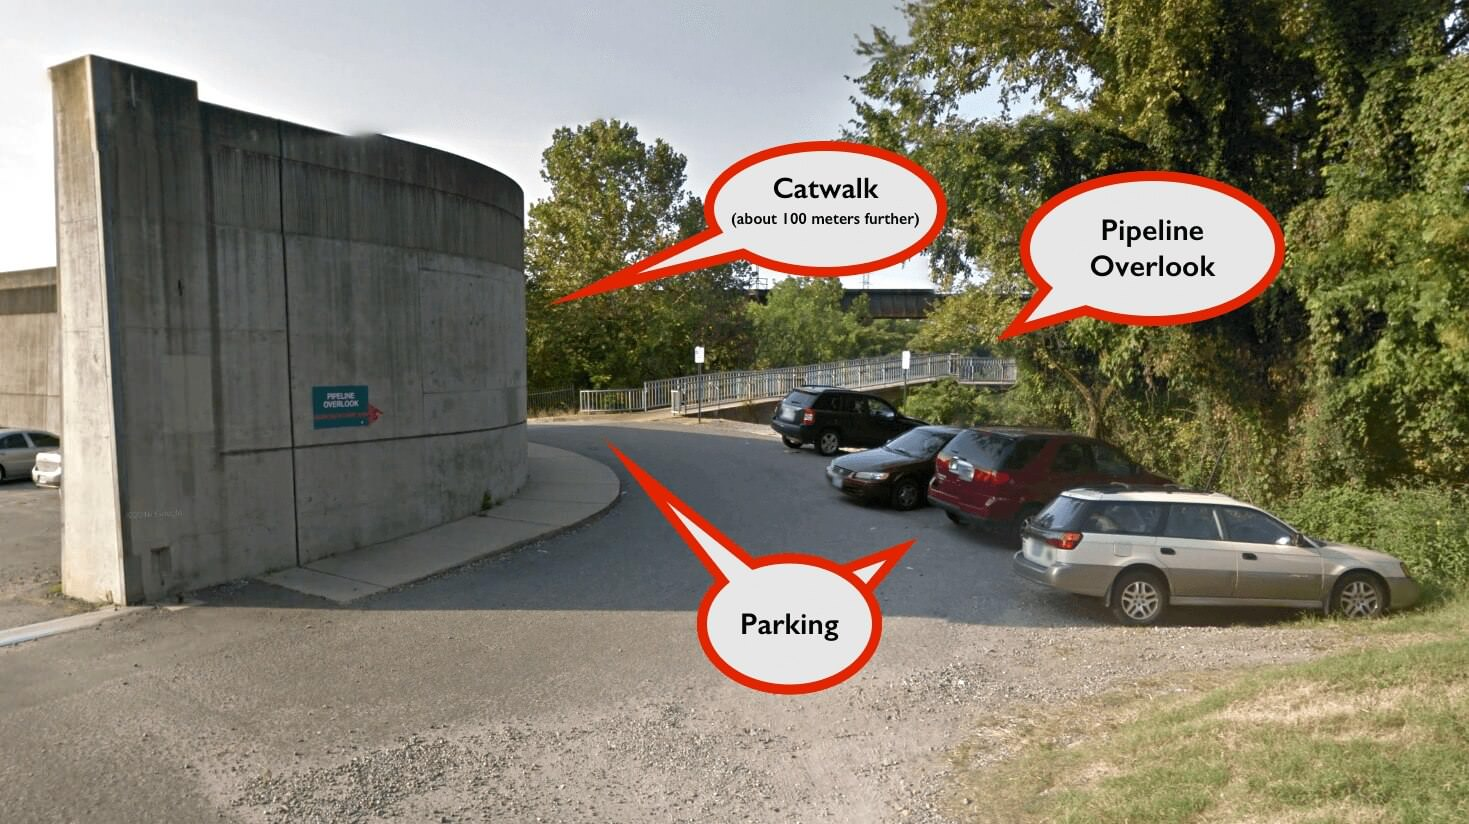 Richmond Pipeline Park Parking and Catwalk Directions